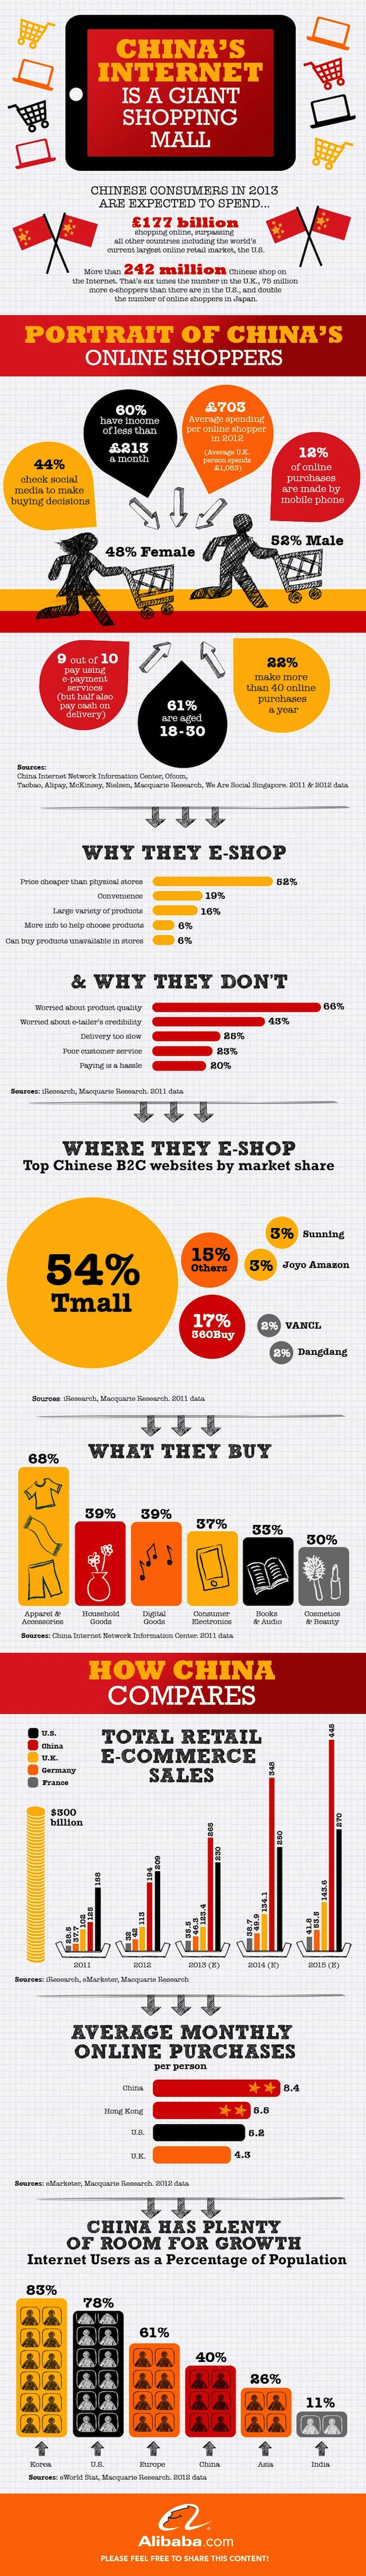 China online spend to reach US% 250 B in 2013 and outpace US soon.